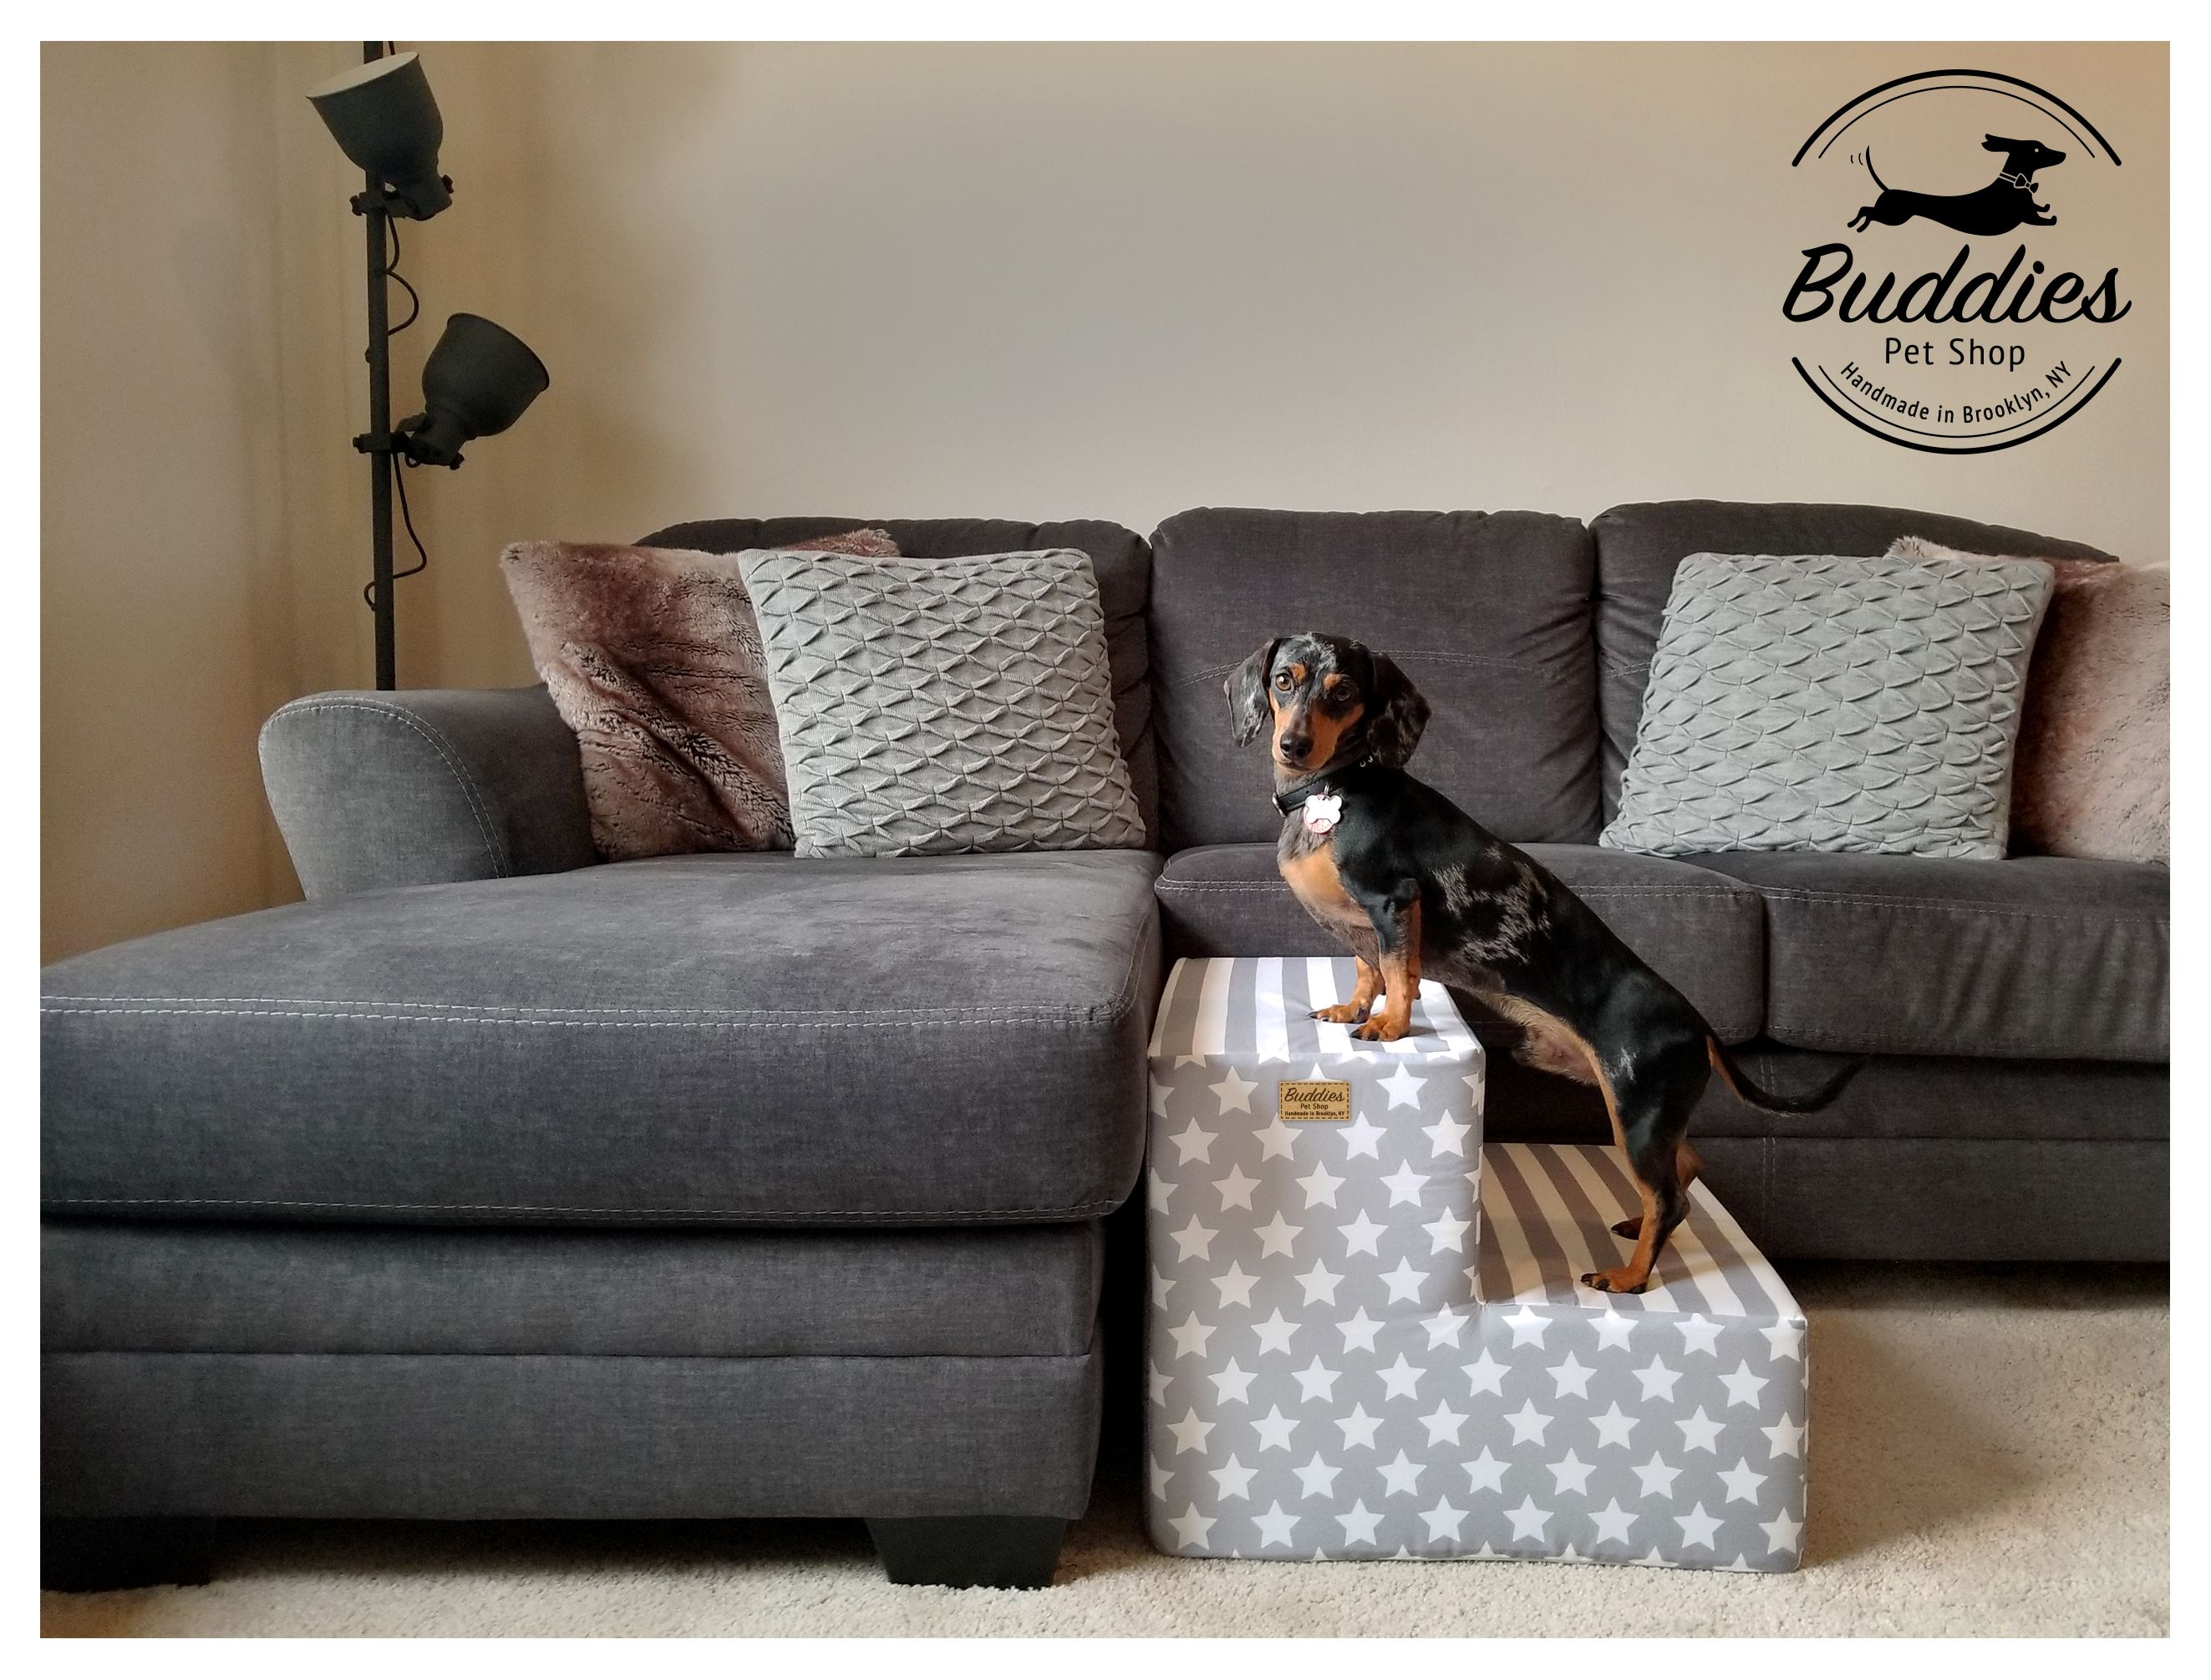 How To Stop Puppy From Jumping On Couch 2021